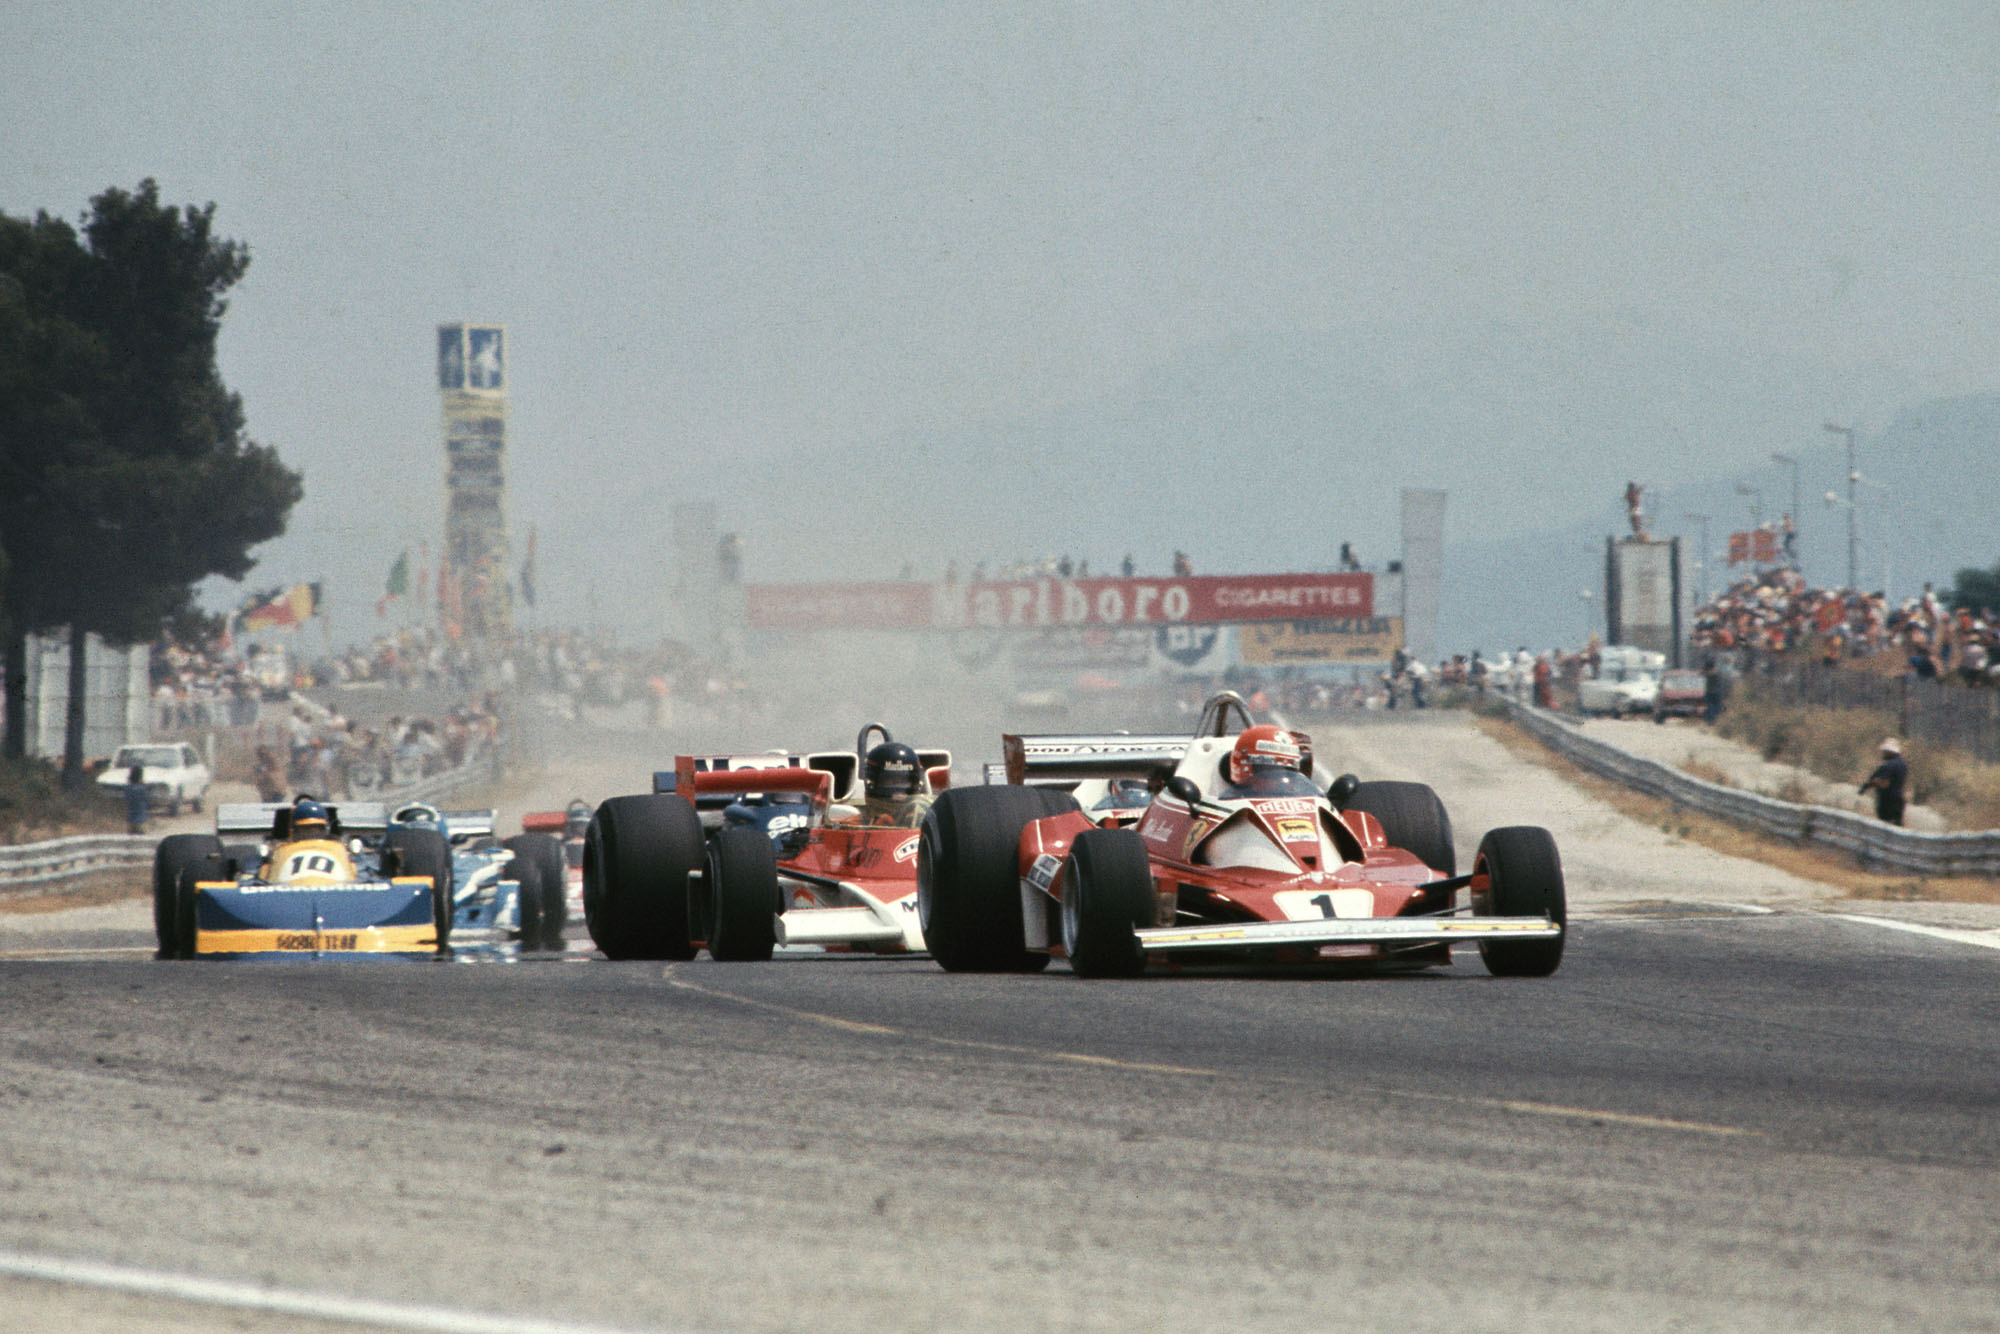 Niki Lauda leads the field at the start of the 1976 French Gran Prix, Paul Ricard.